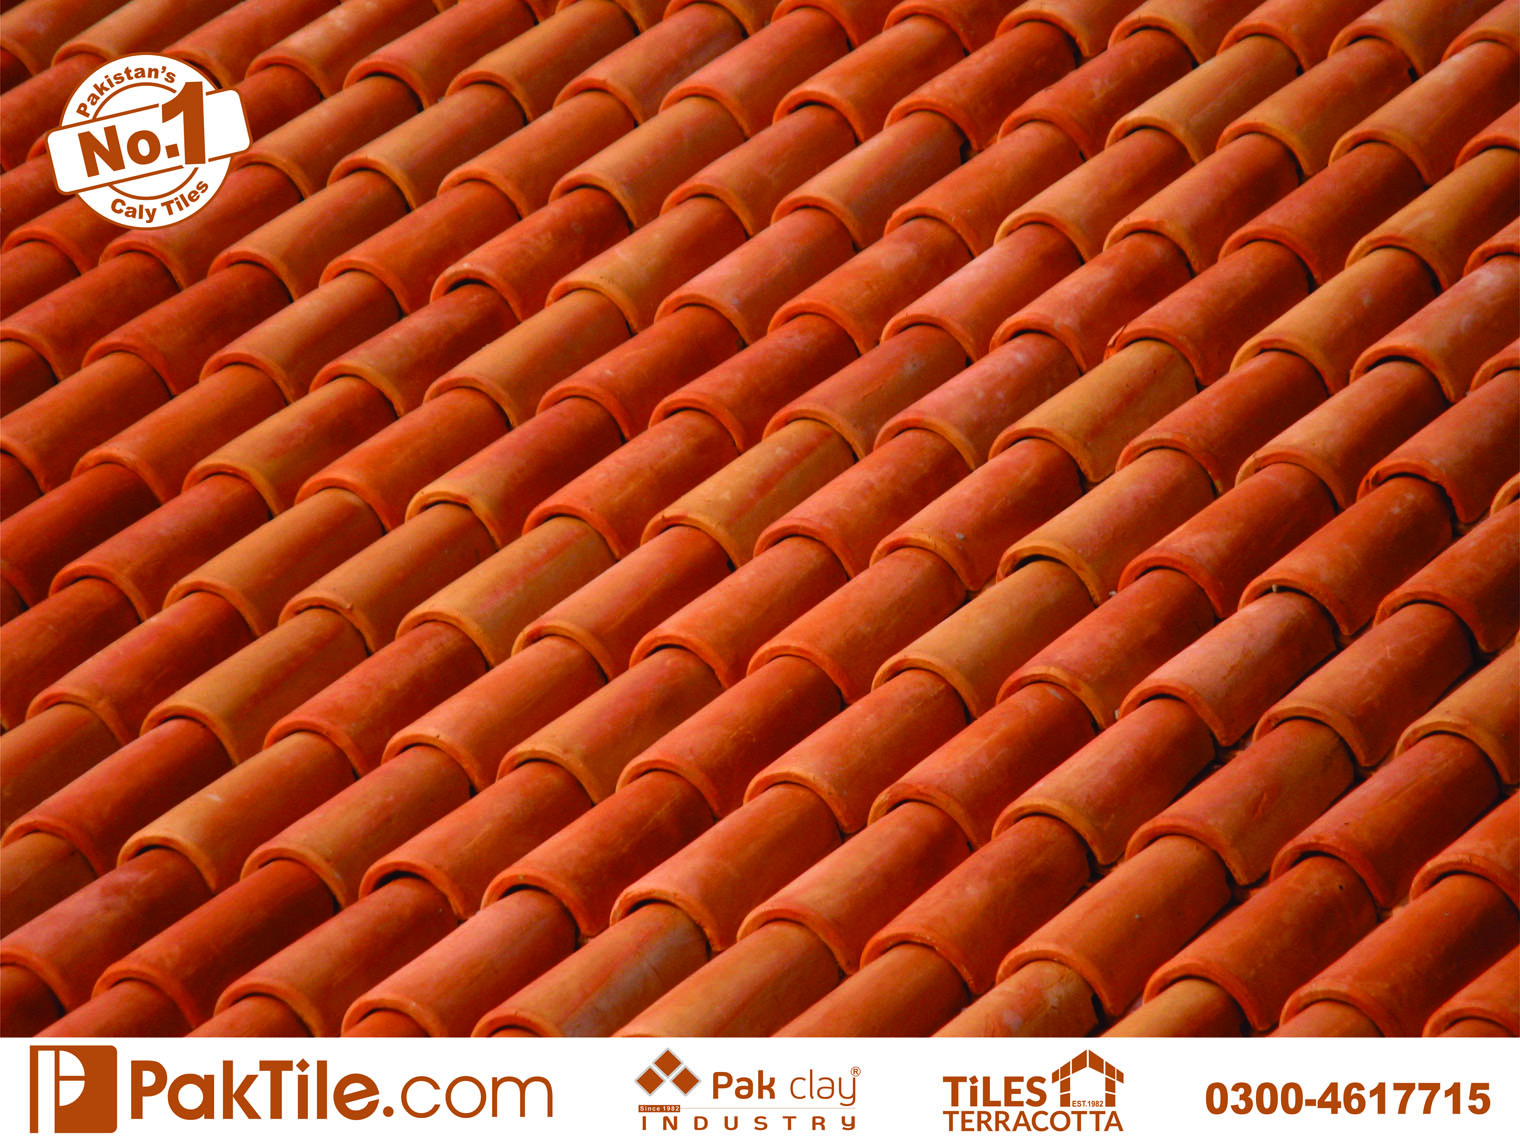 5 High Quality Natural Terracotta Khaprail Roof Tiles Designs Types and Prices in Islamabad Pakistan Images